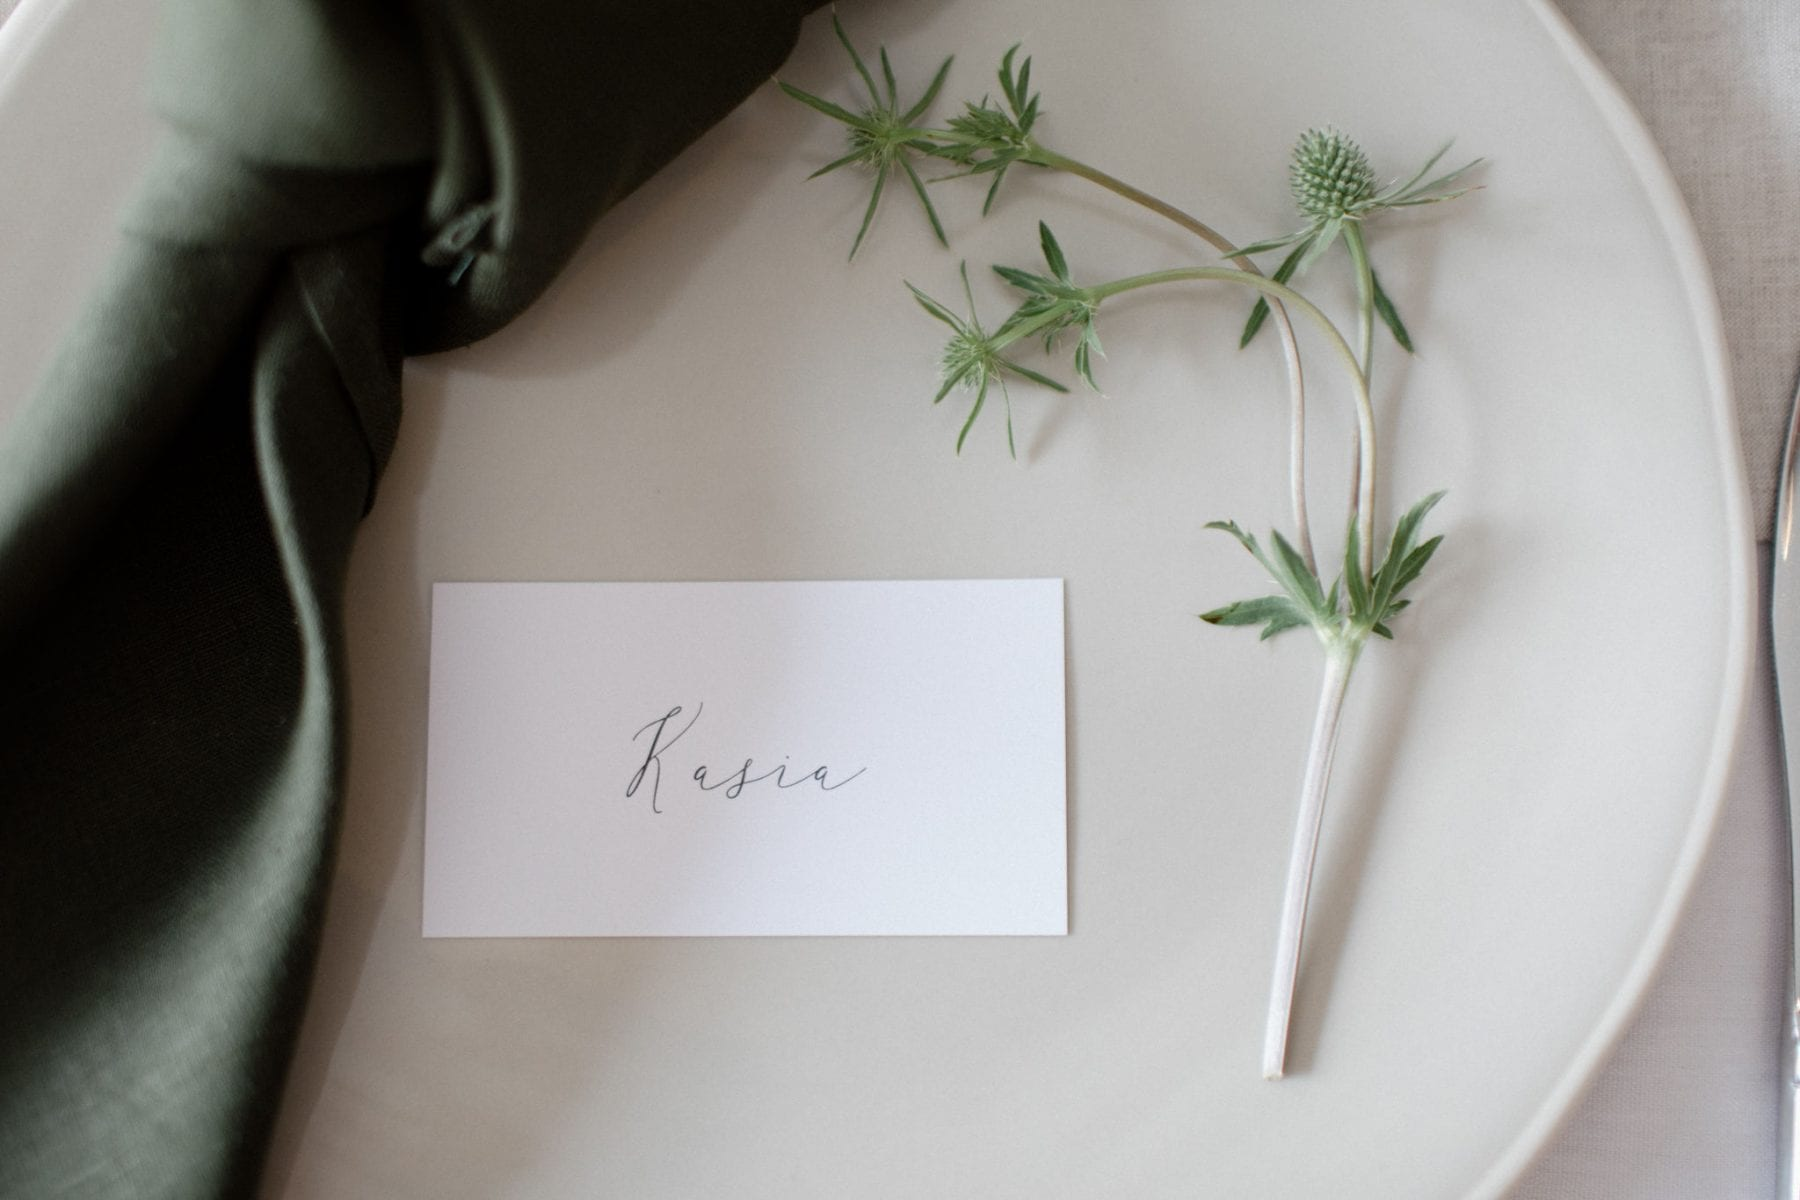 On My Hand wedding flowers - real wedding with black barn elegance - table styling